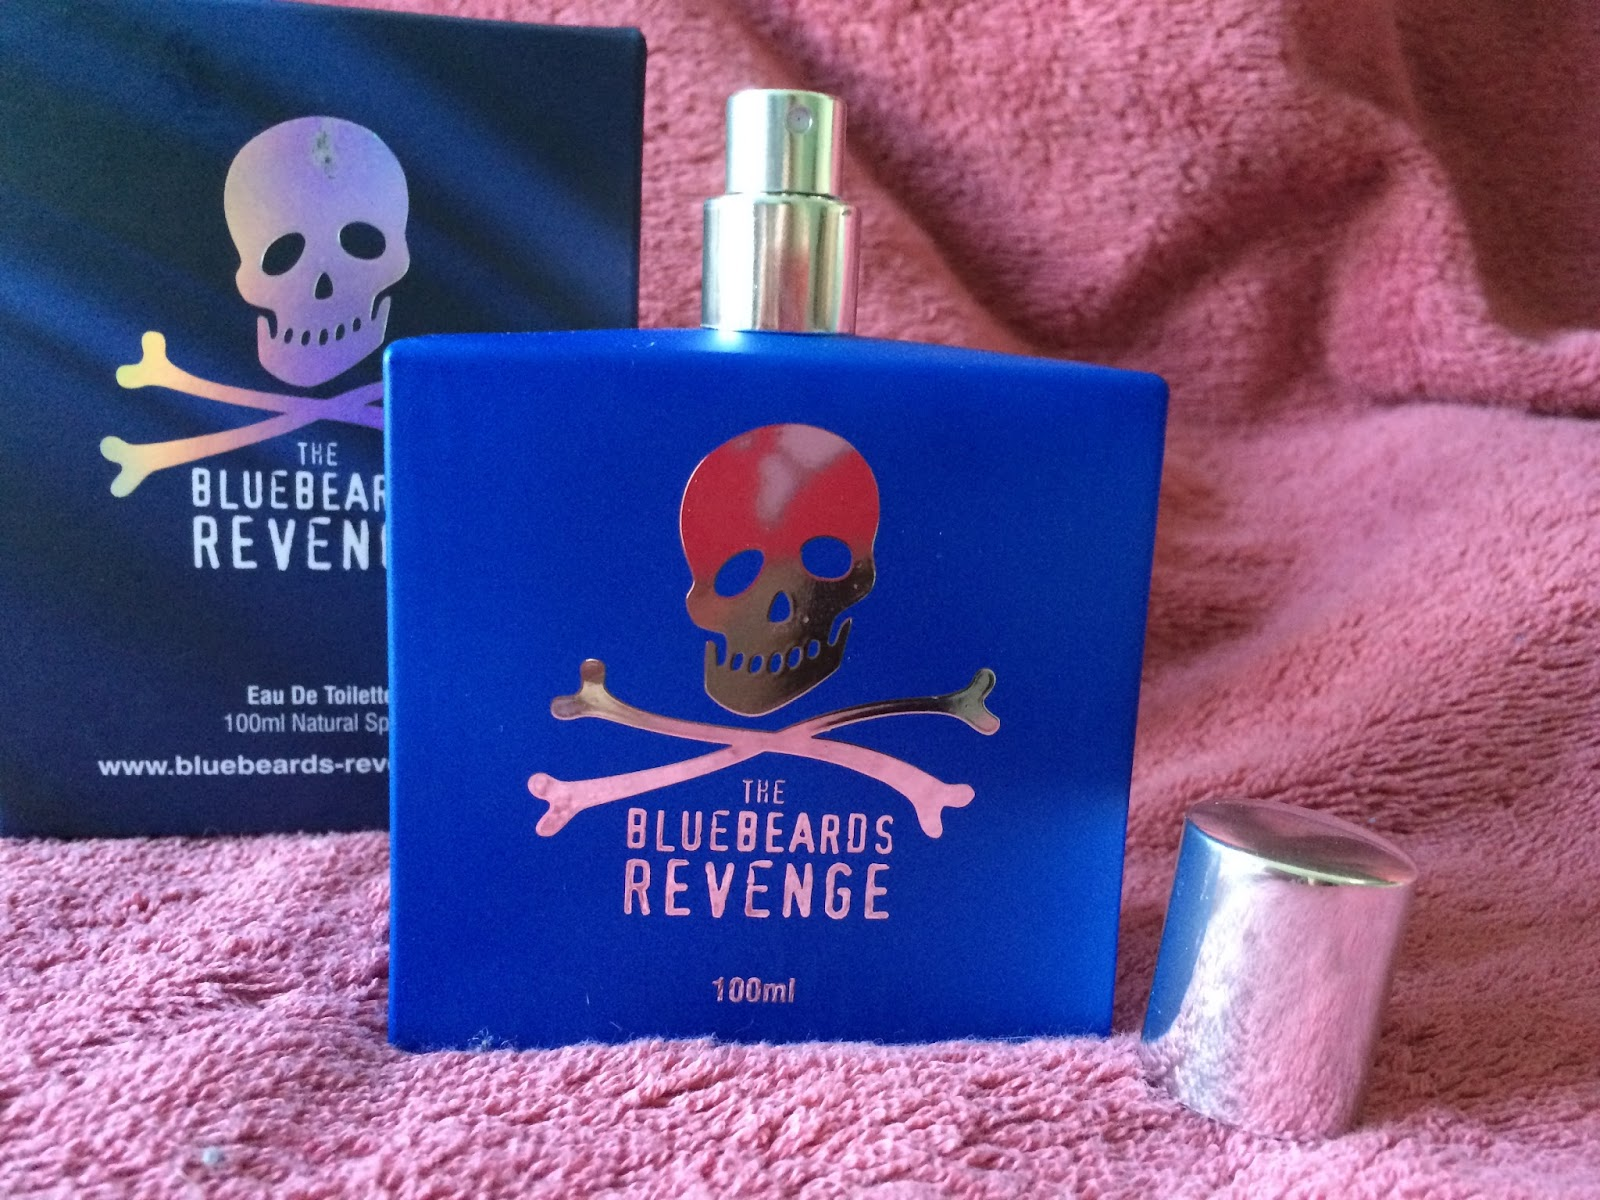 The Bluebeards Revenge Eau De Toilette